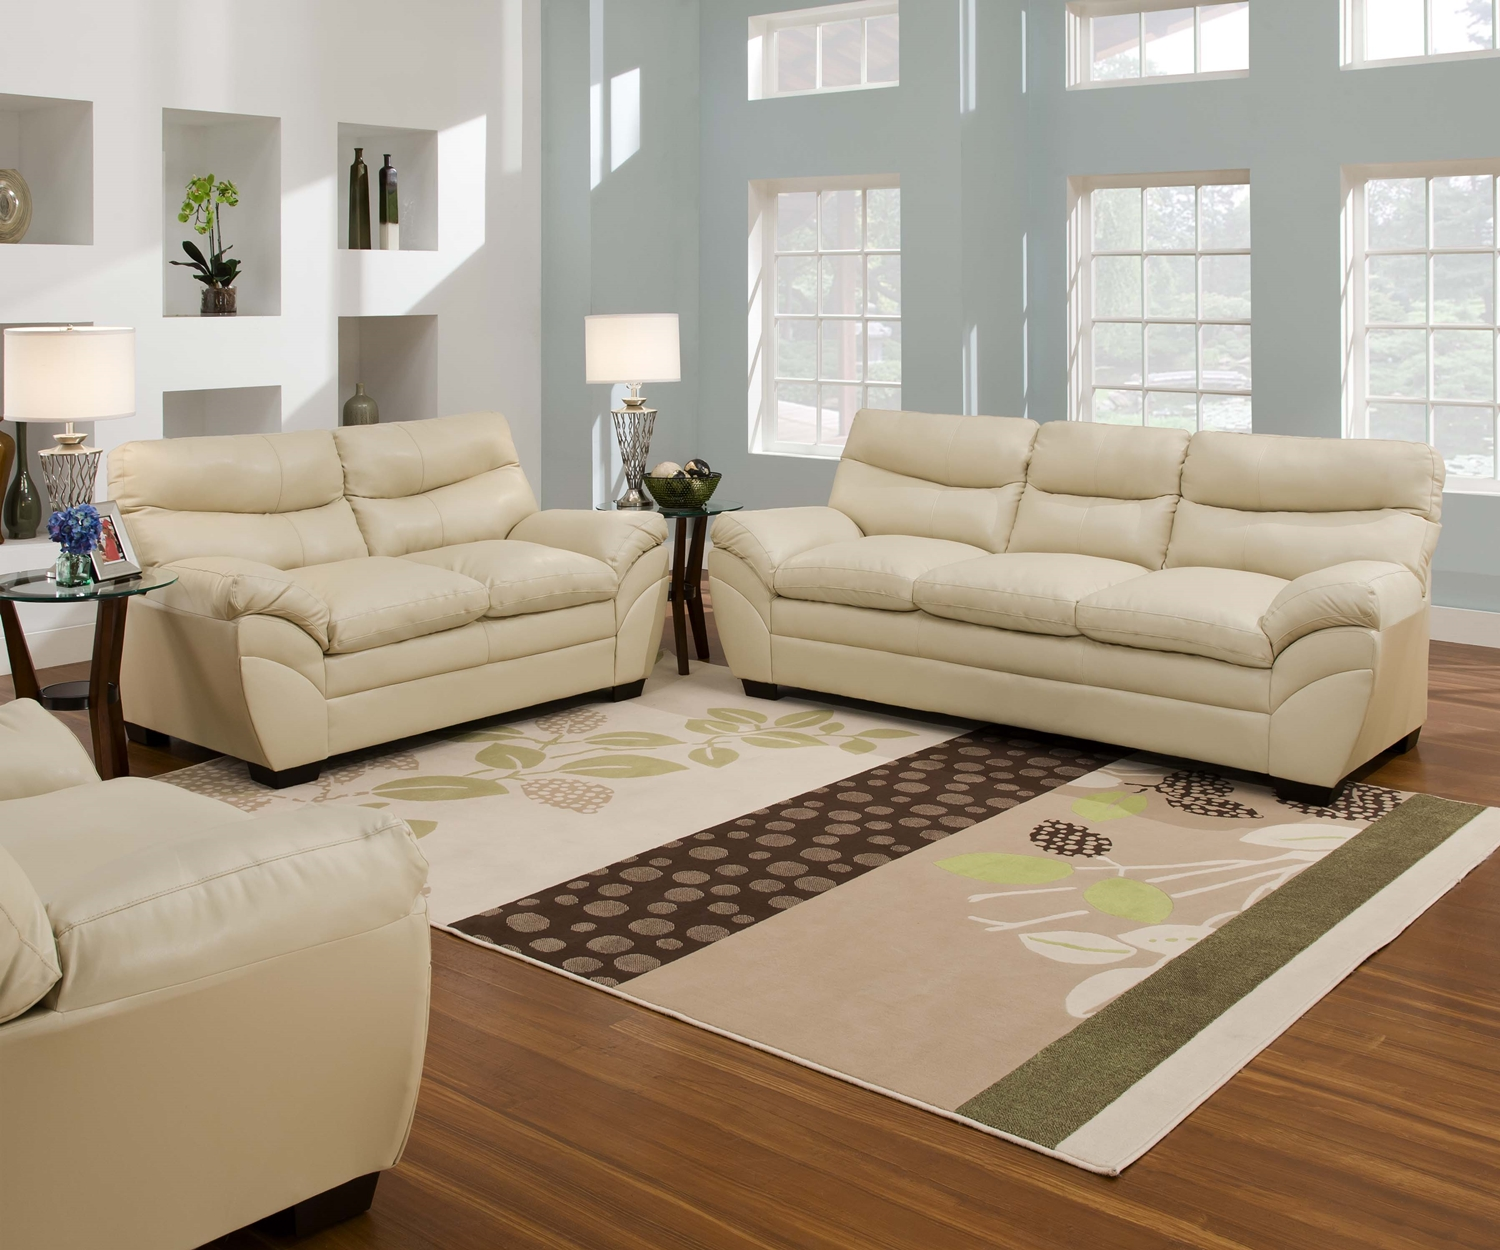 Cream living room furniture modern house for Best living room couches